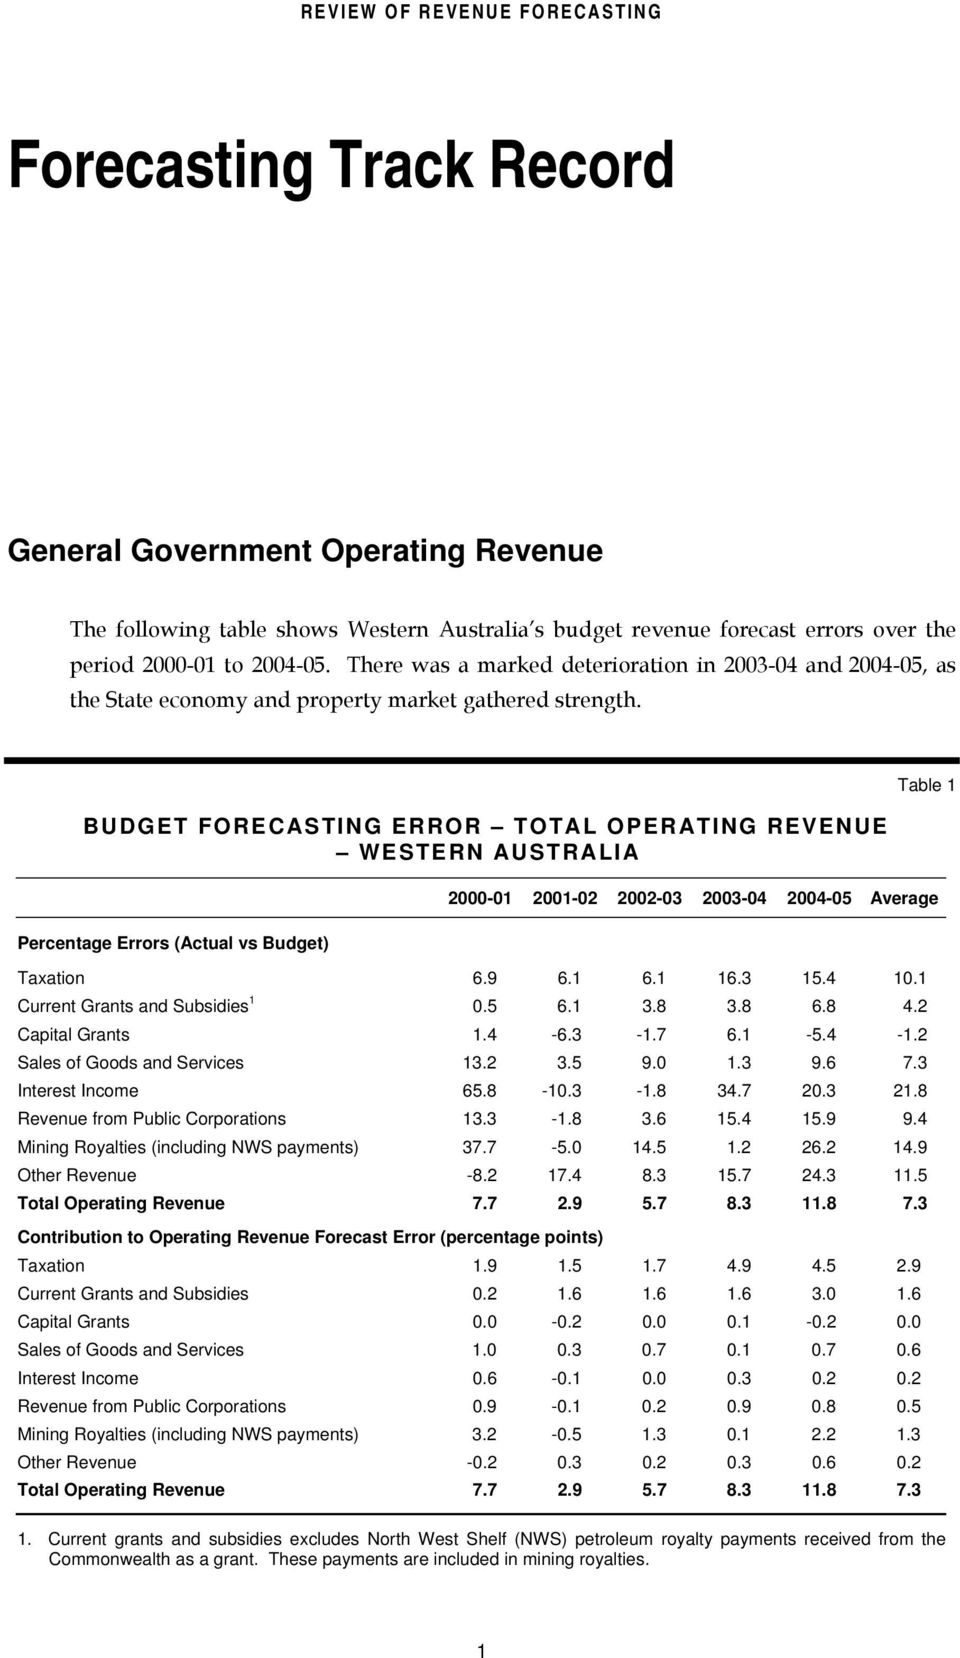 BUDGET FORECASTING ERROR TOTAL OPERATING REVENUE WESTERN AUSTRALIA Percentage Errors (Actual vs Budget) Table 1 2000-01 2001-02 2002-03 2003-04 2004-05 Average Taxation 6.9 6.1 6.1 16.3 15.4 10.